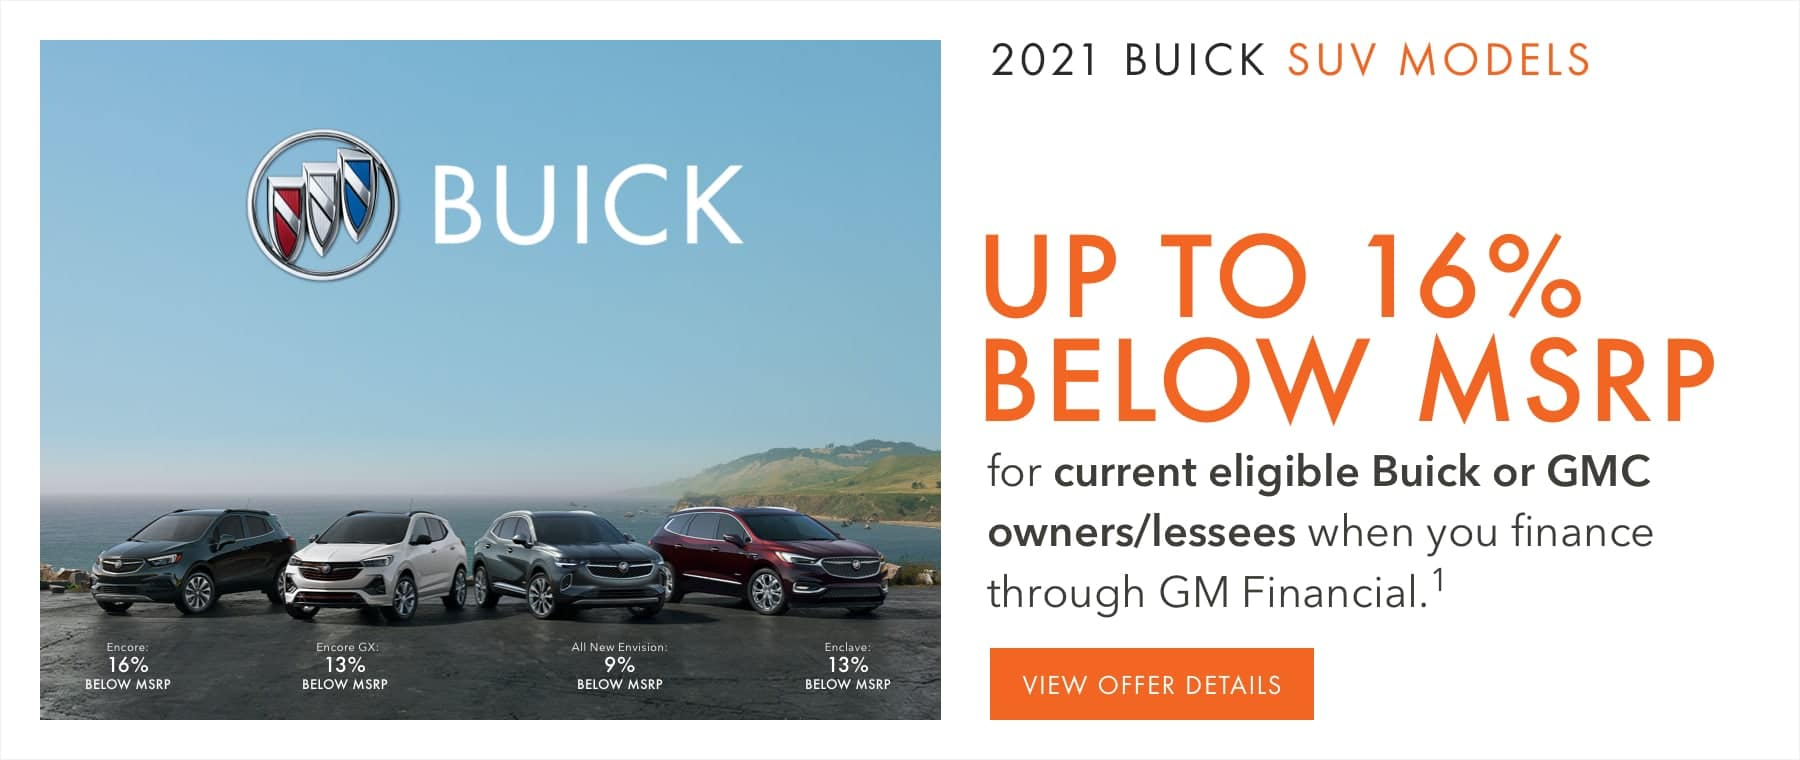 Up to 16% below MSRP for current eligible Buick or GMC owners/lessees when you finance through GM Financial.1